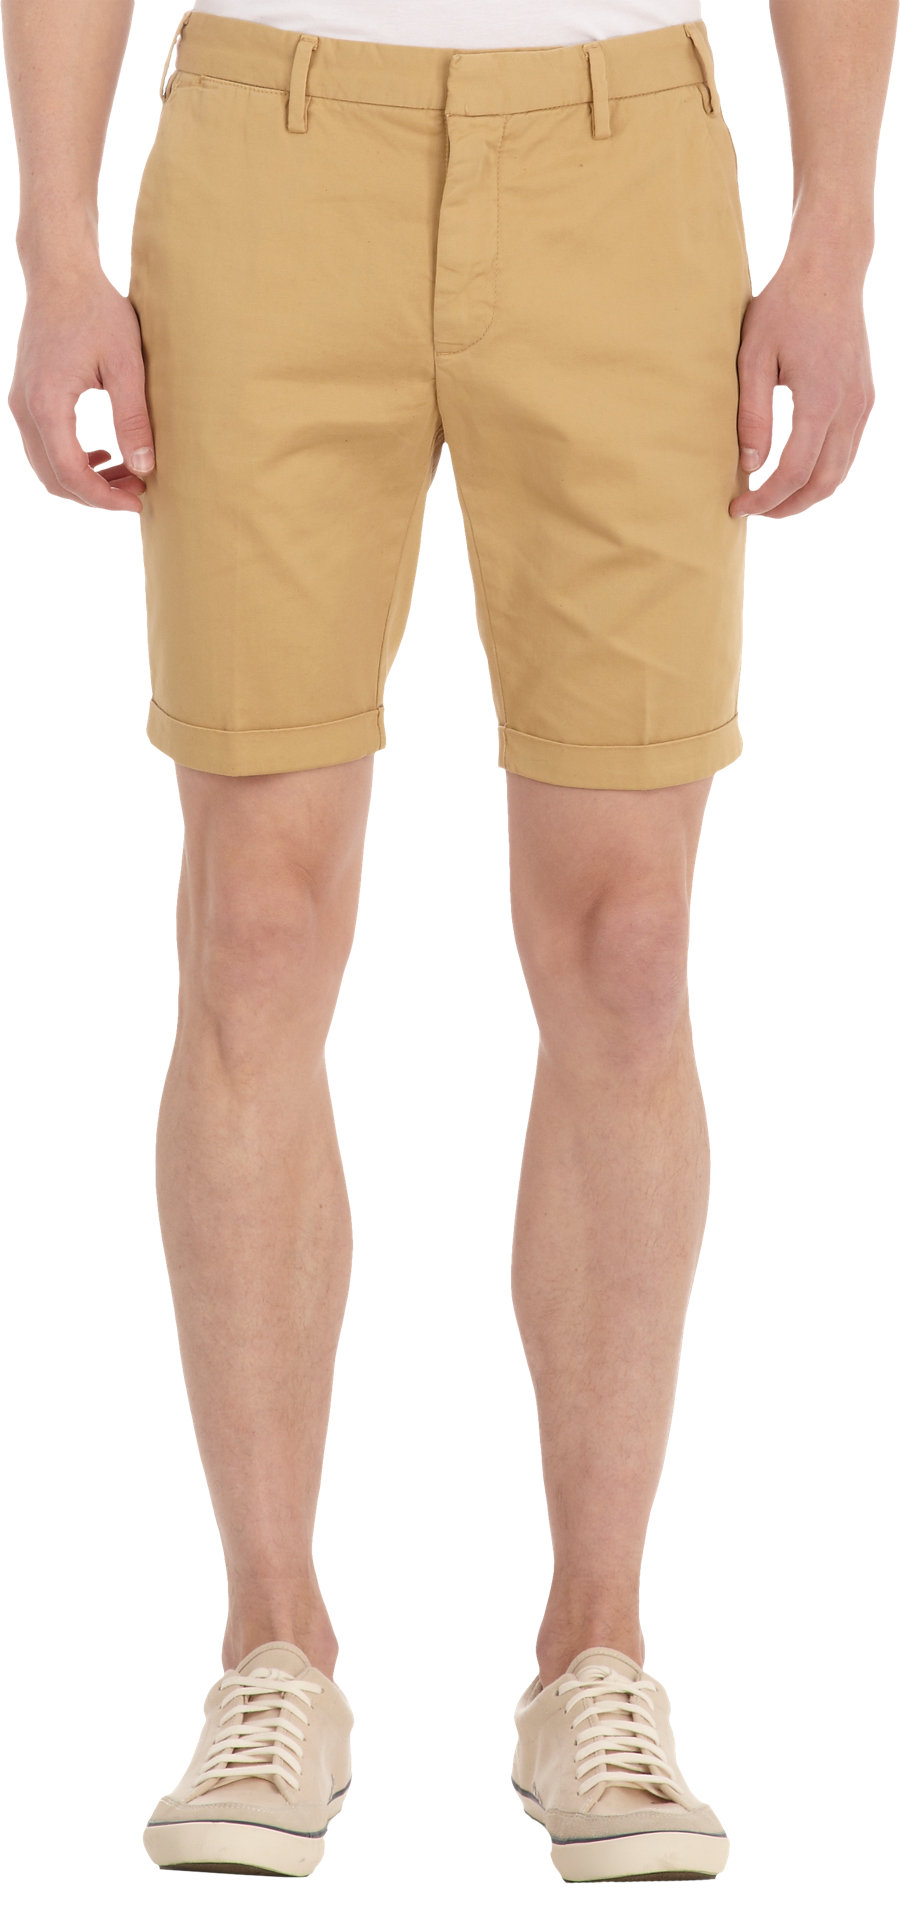 Gant rugger Cuffed Chino Shorts in Natural for Men   Lyst